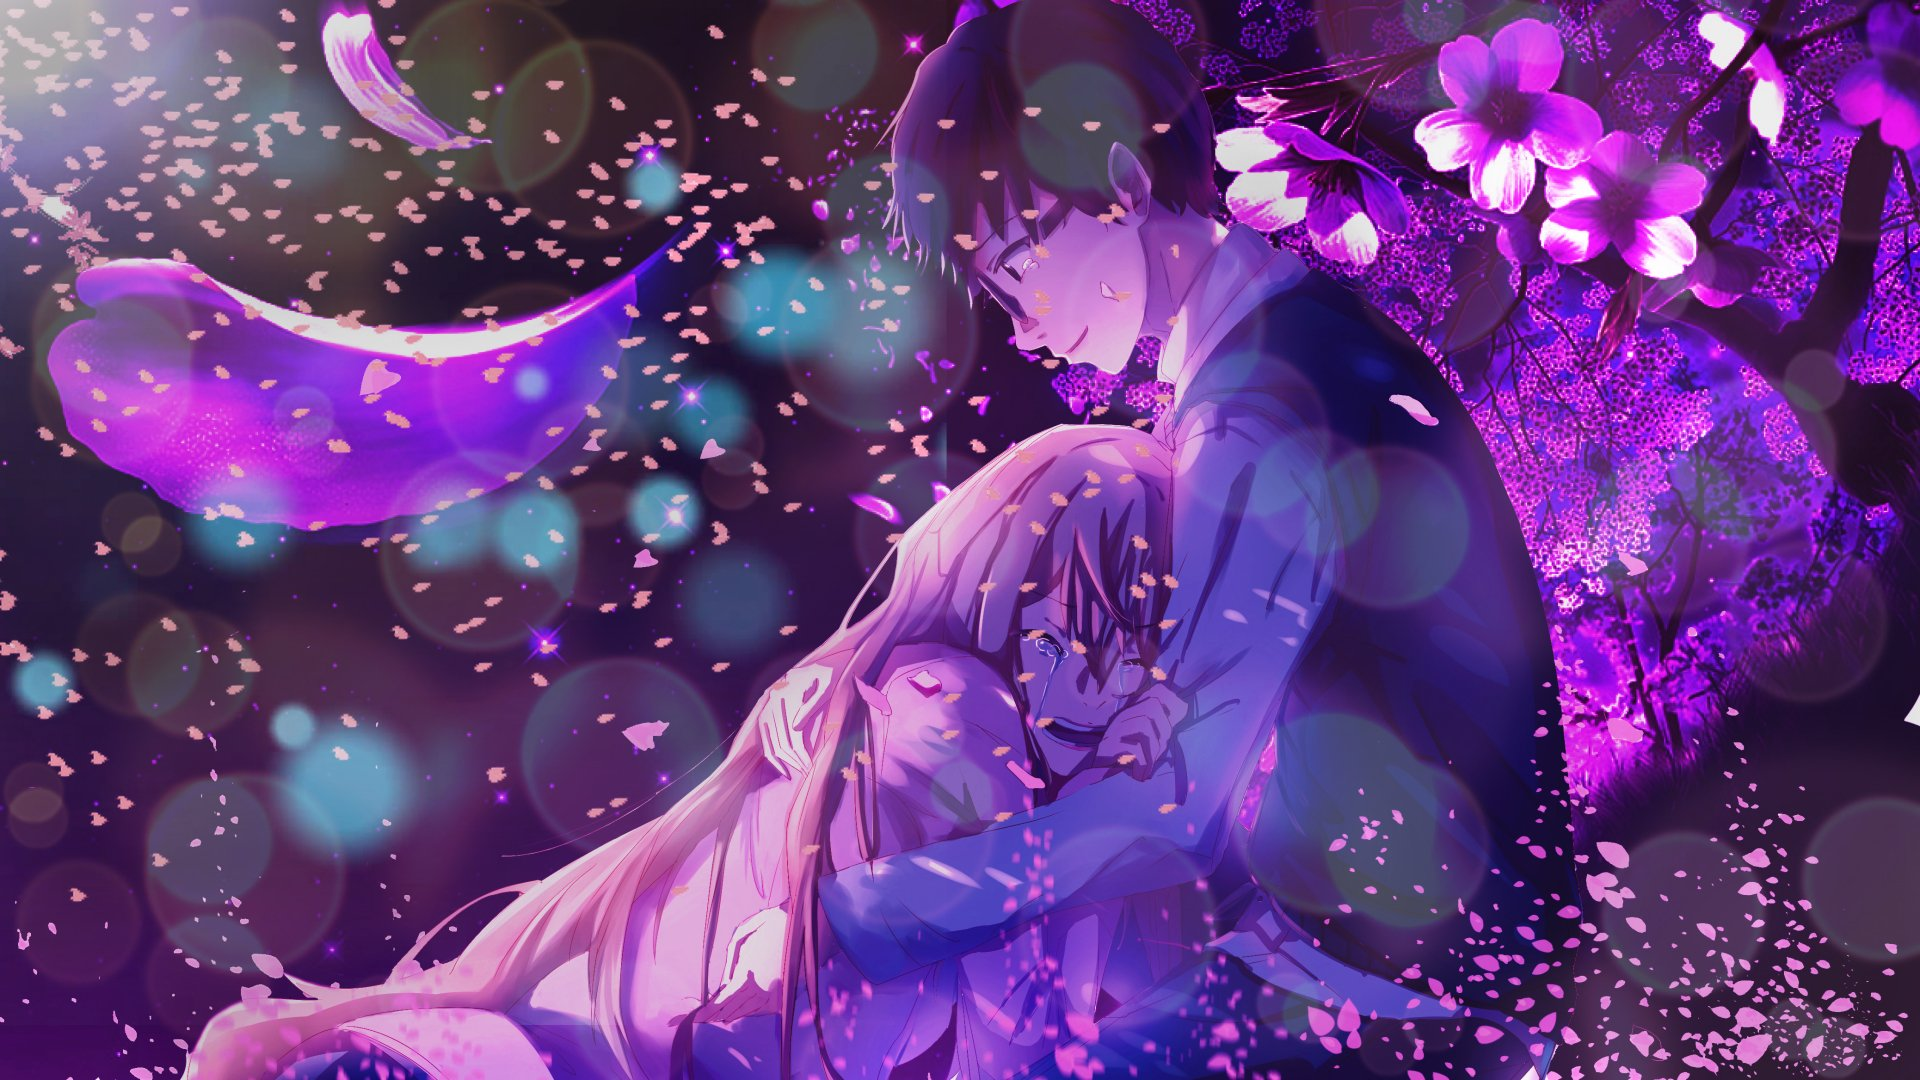 Your Lie In April Quotes Wallpaper Your Lie In April 4k Ultra Hd Wallpaper Background Image